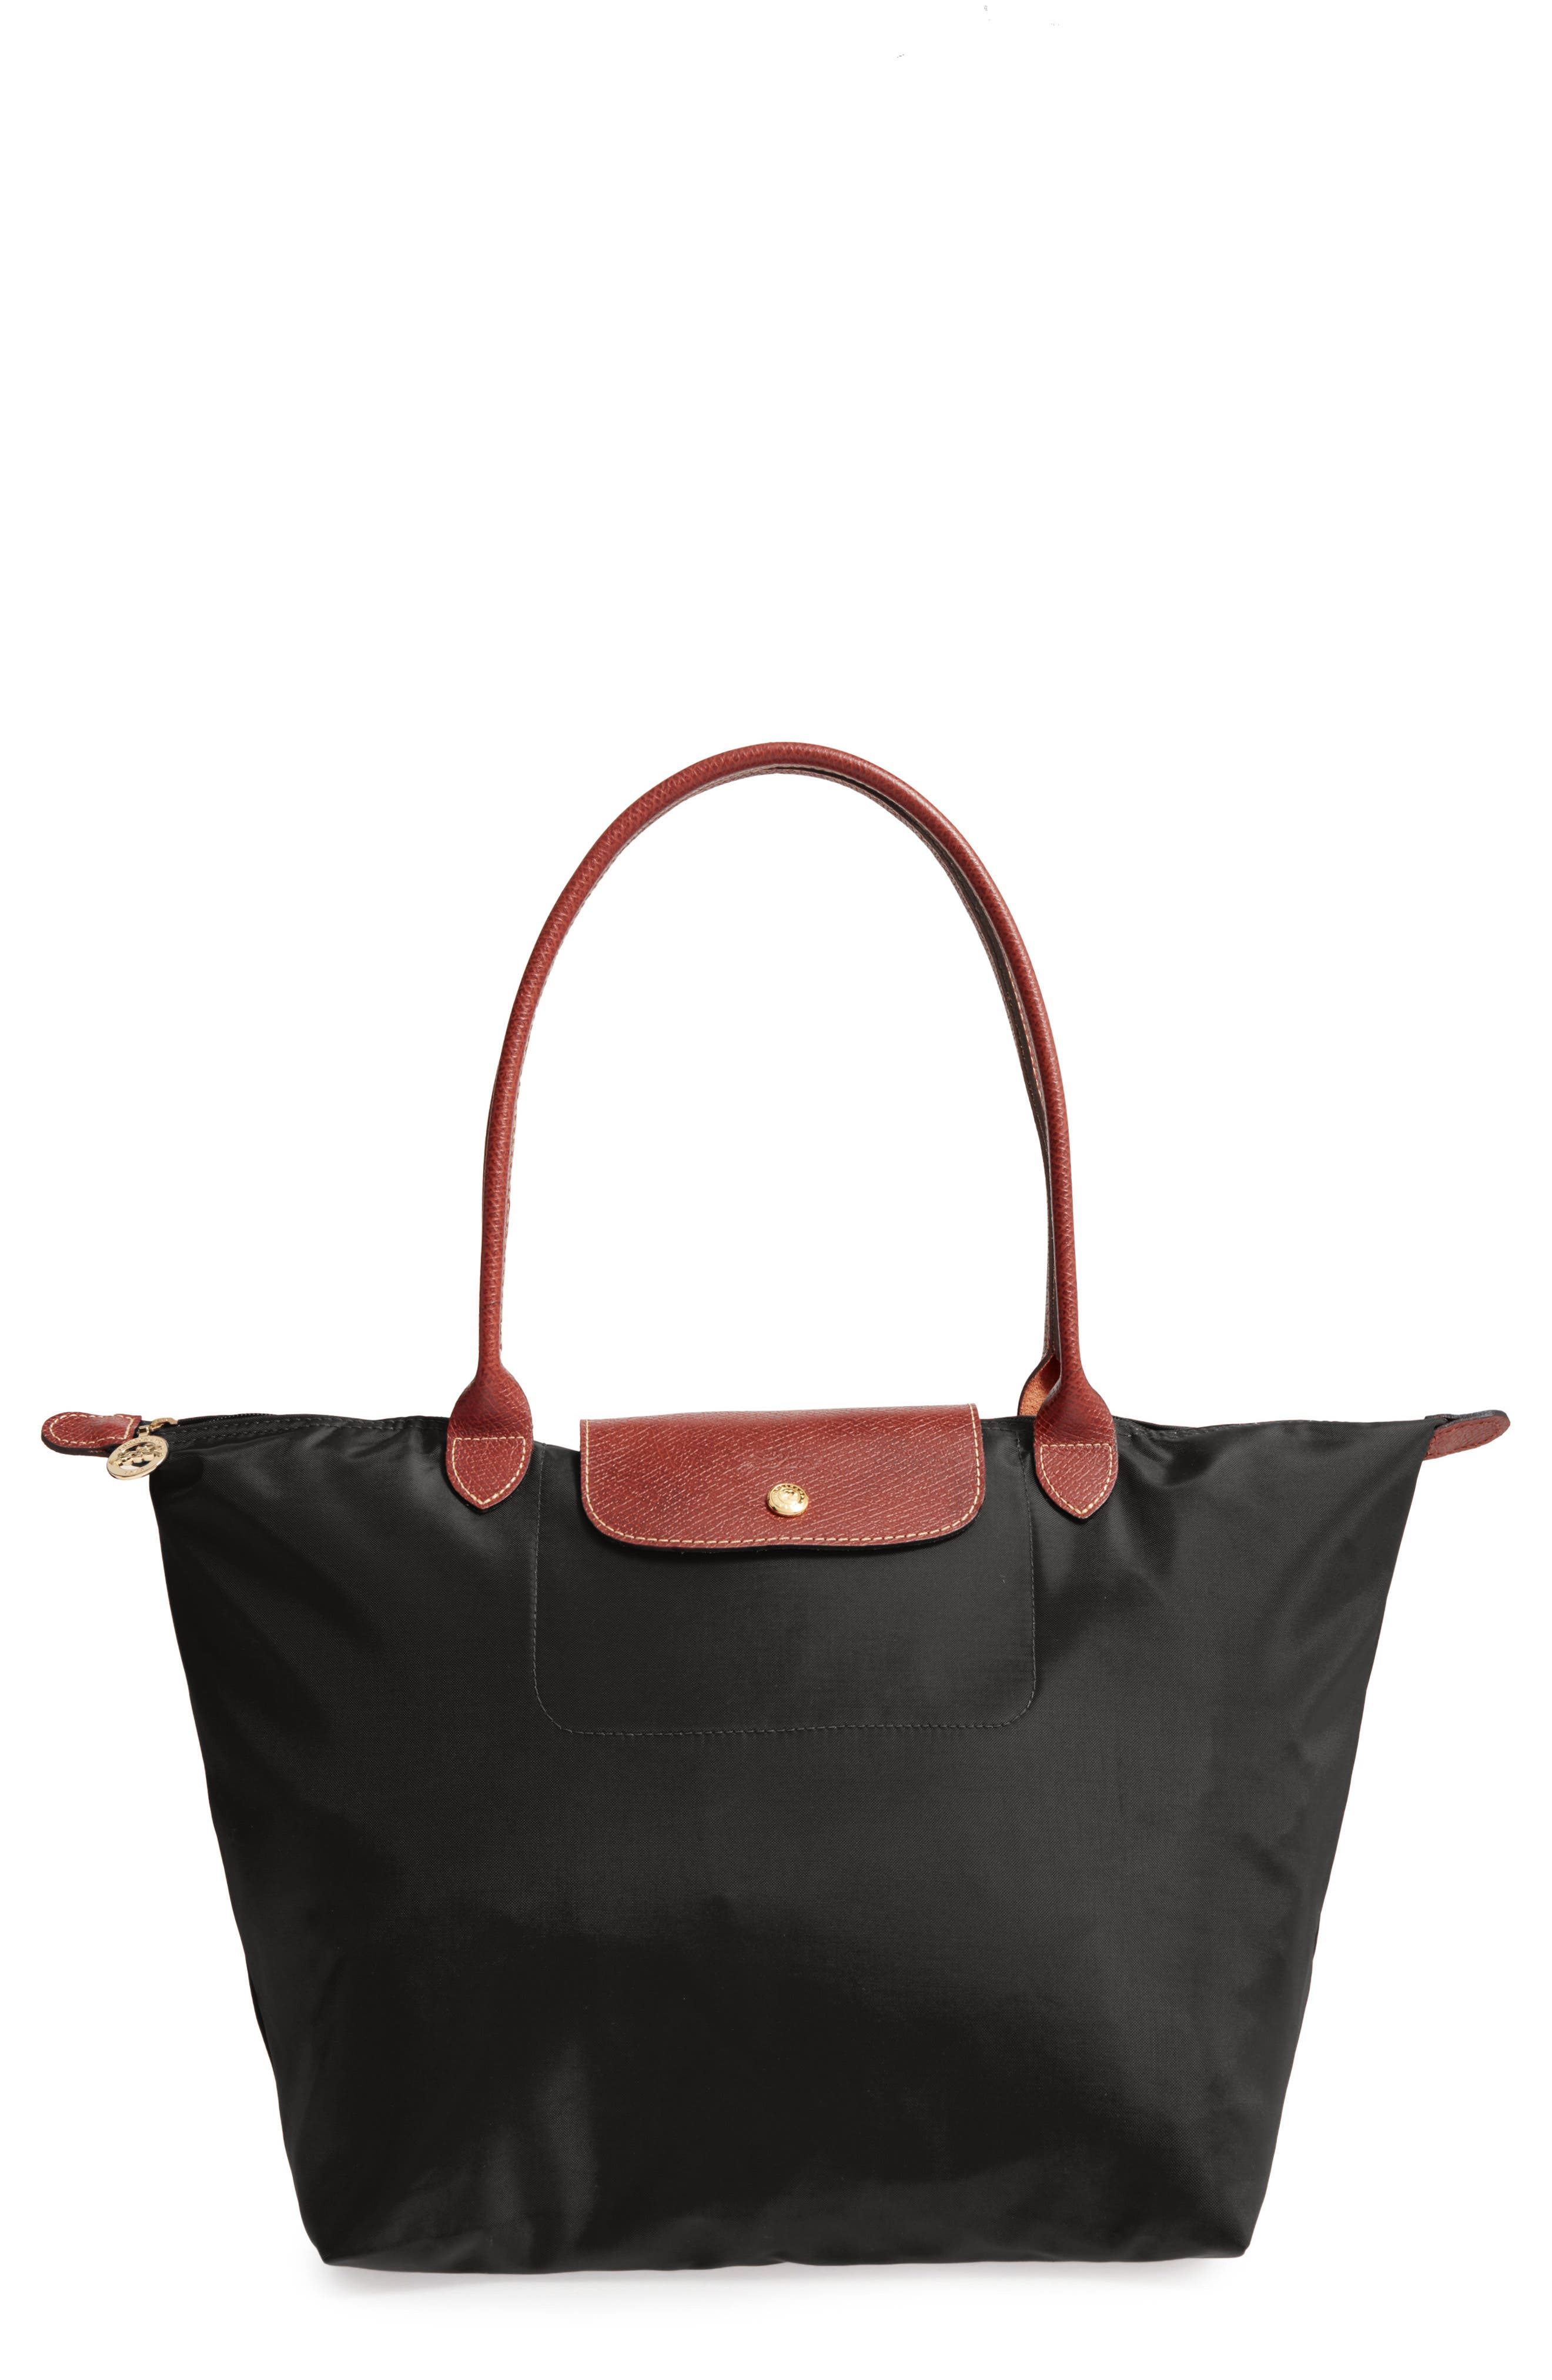 Longchamp Large Le Pliage Tote - Black